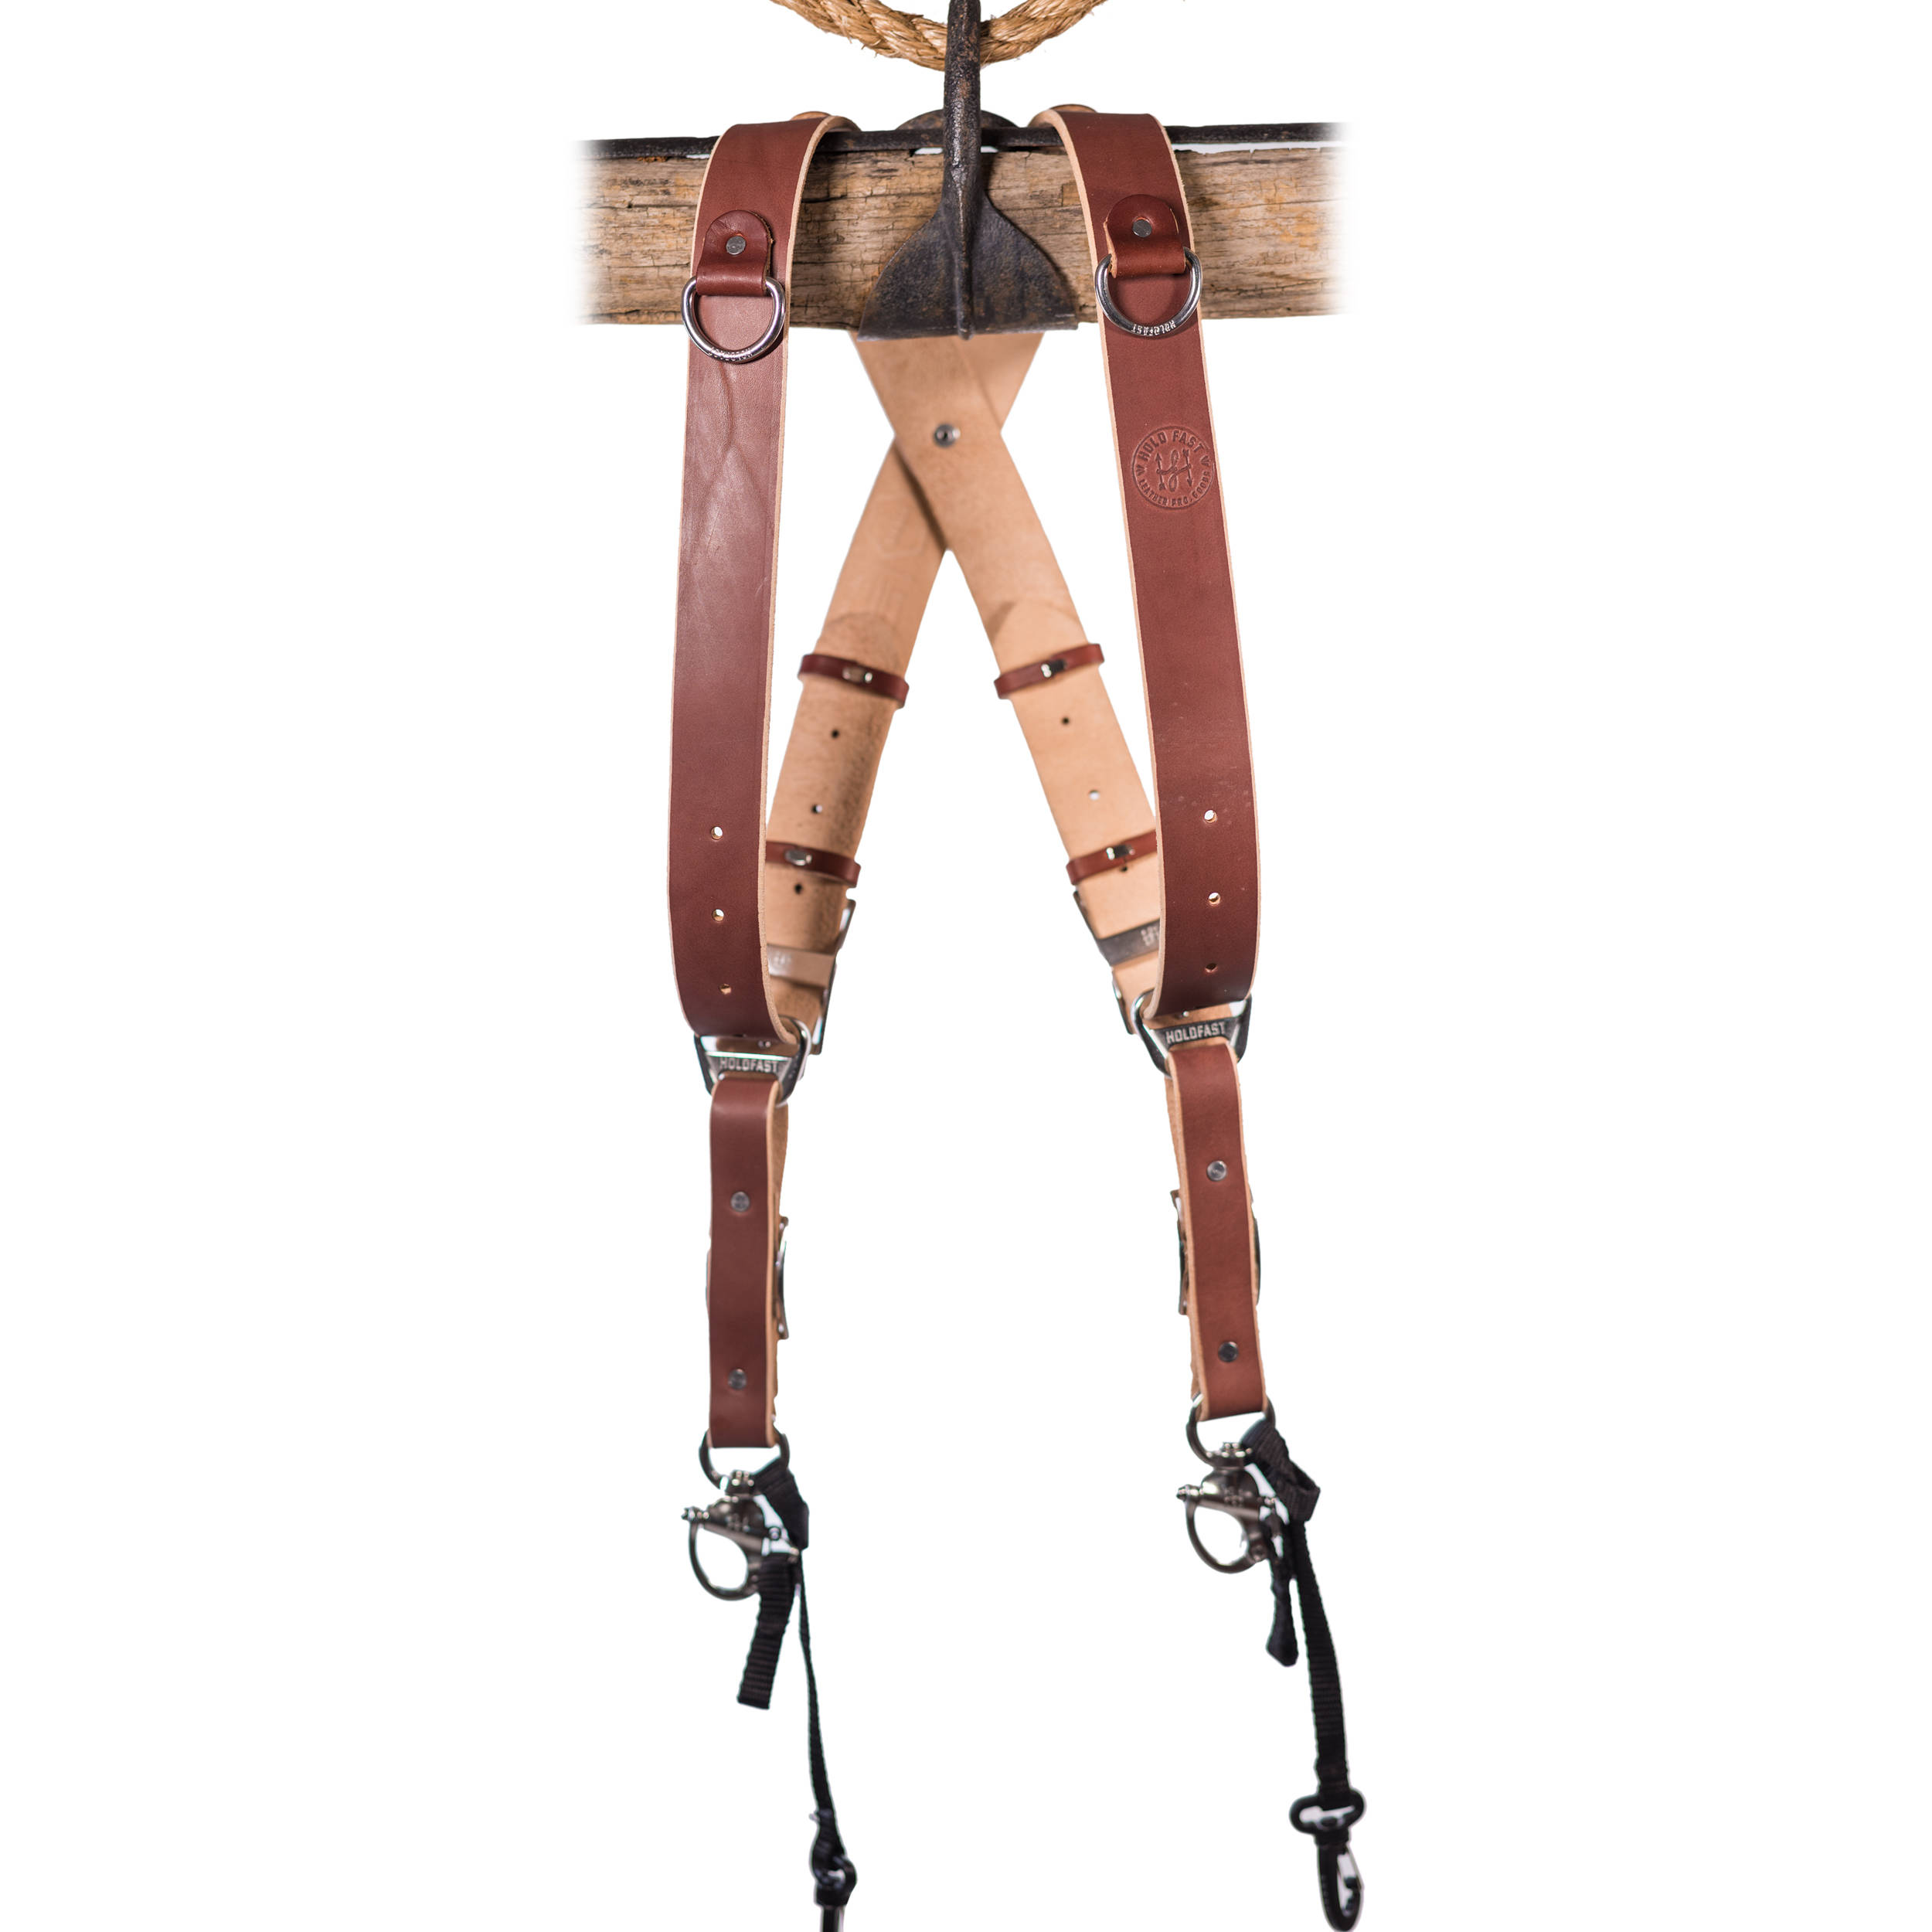 Money Maker Two-Camera Harness English Bridle, Chestnut, Small